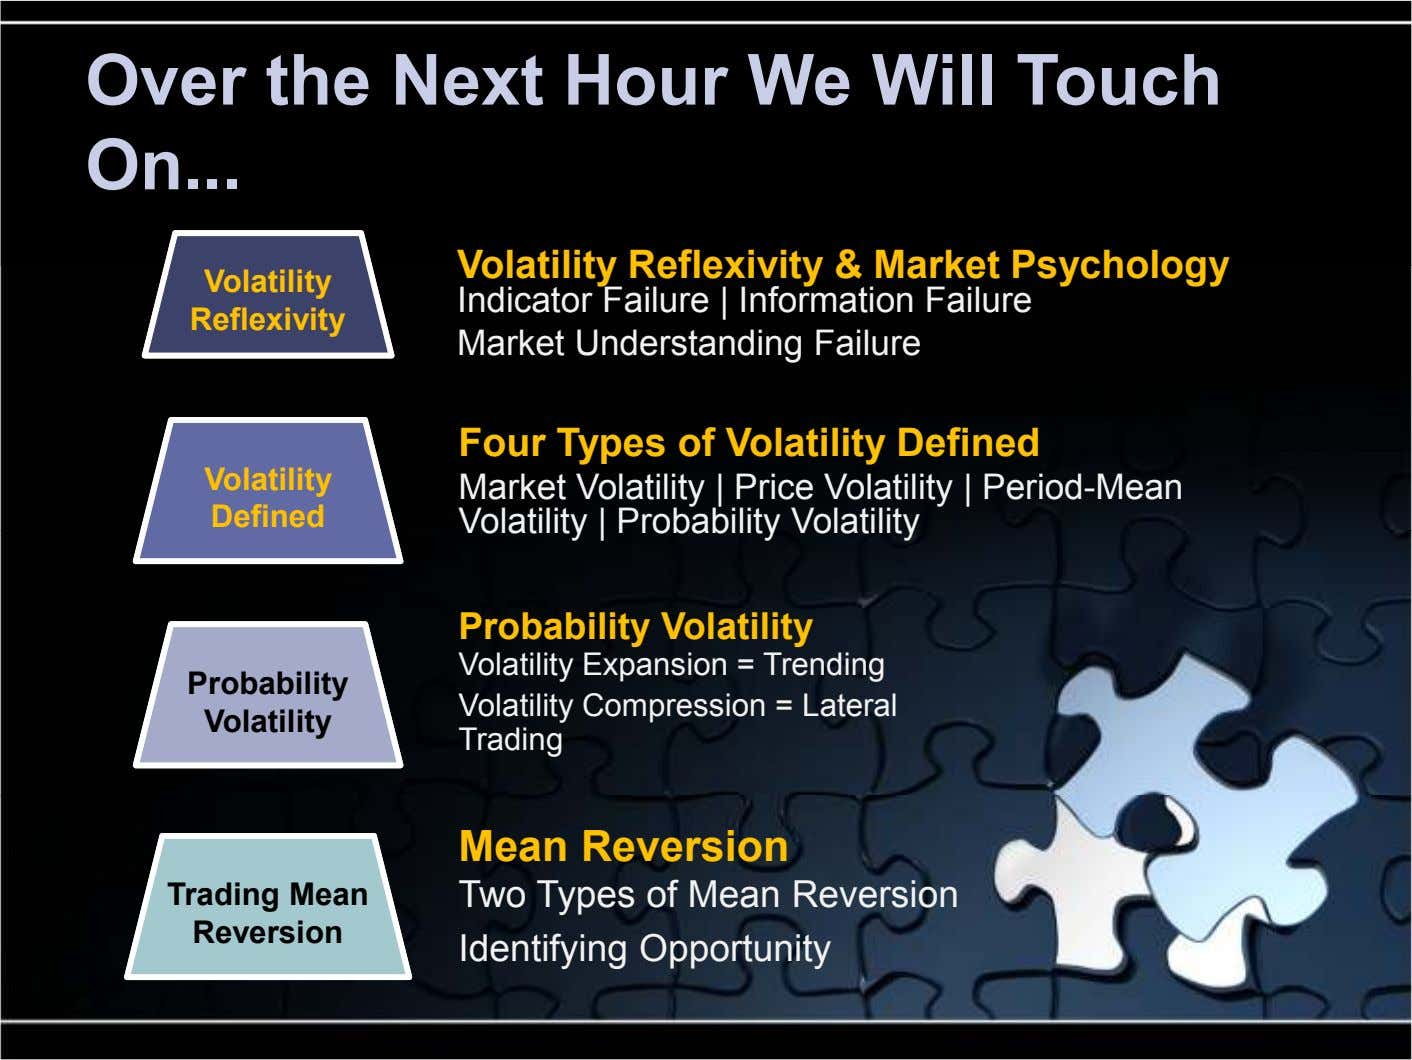 Over the Next Hour We Will Touch On ... Volatility Reflexivity & Market Psychology Volatility Reflexivity